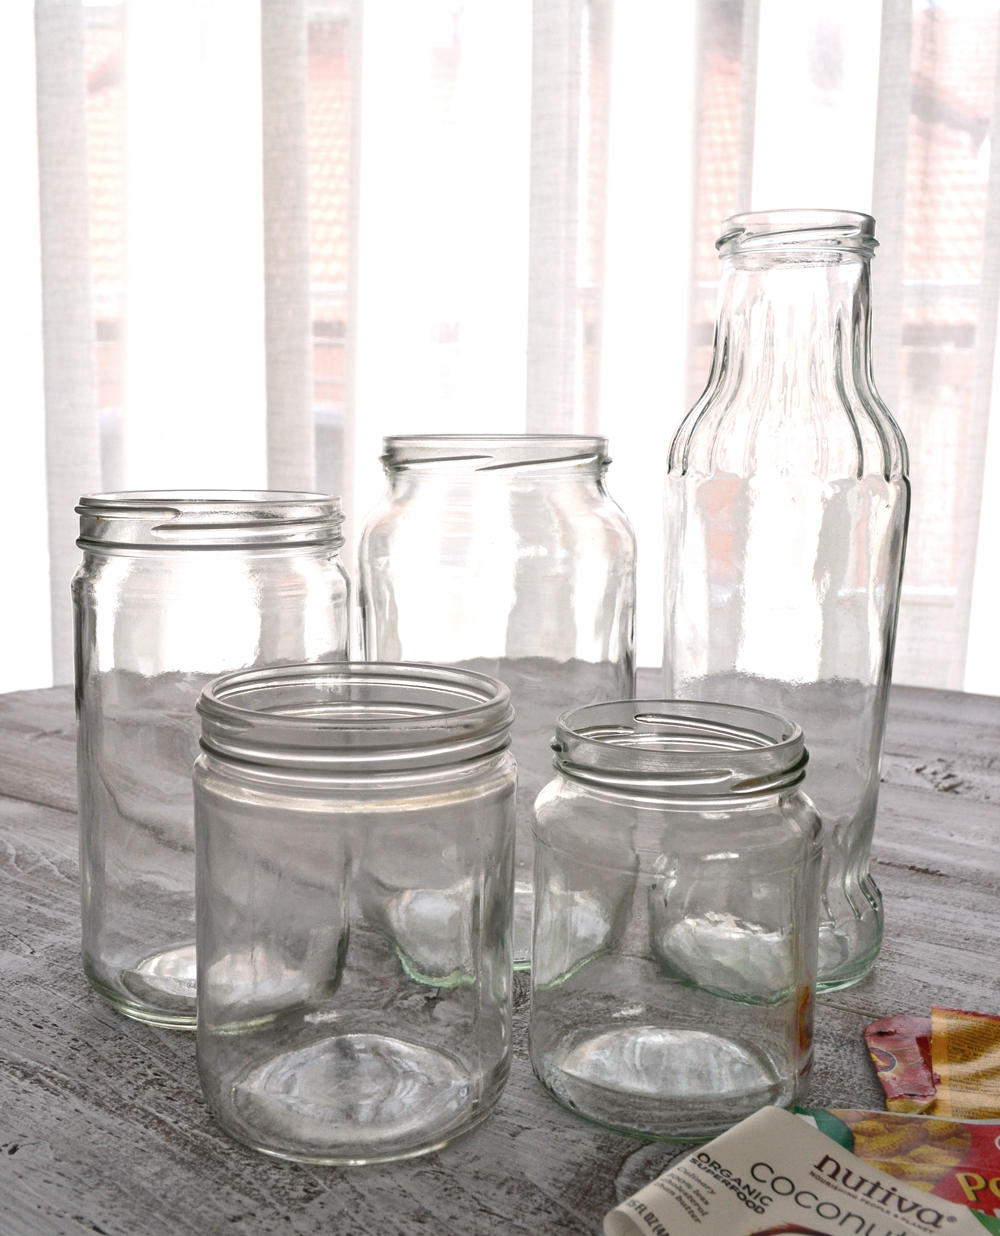 Remove sticky labels from jars and bottles using 2 non-toxic ingredients - learn my secret formula for removing all those super annoying labels that simply won't go off, using 2 non toxic everyday ingredients that you already have in your kitchen!